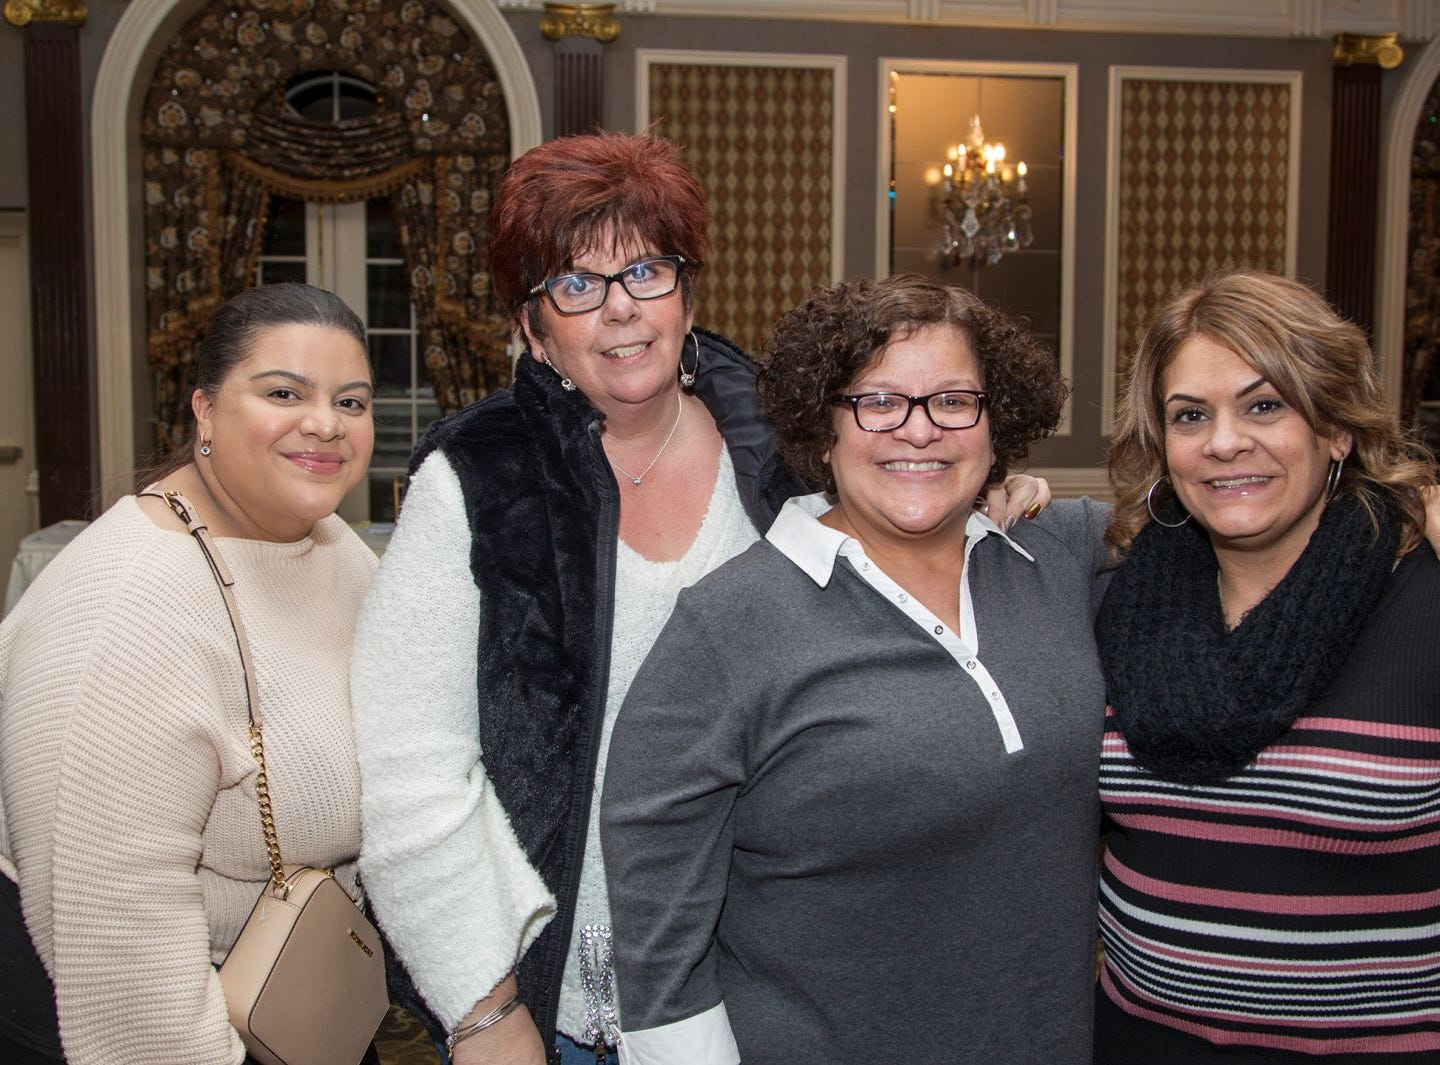 Megan Marrero, Maryann Mancini, Elizabeth Gonzalez, Rosa Vargas.  A Night at the Races hosted by OASIS at the Brownstone in Paterson. 2/7/2019